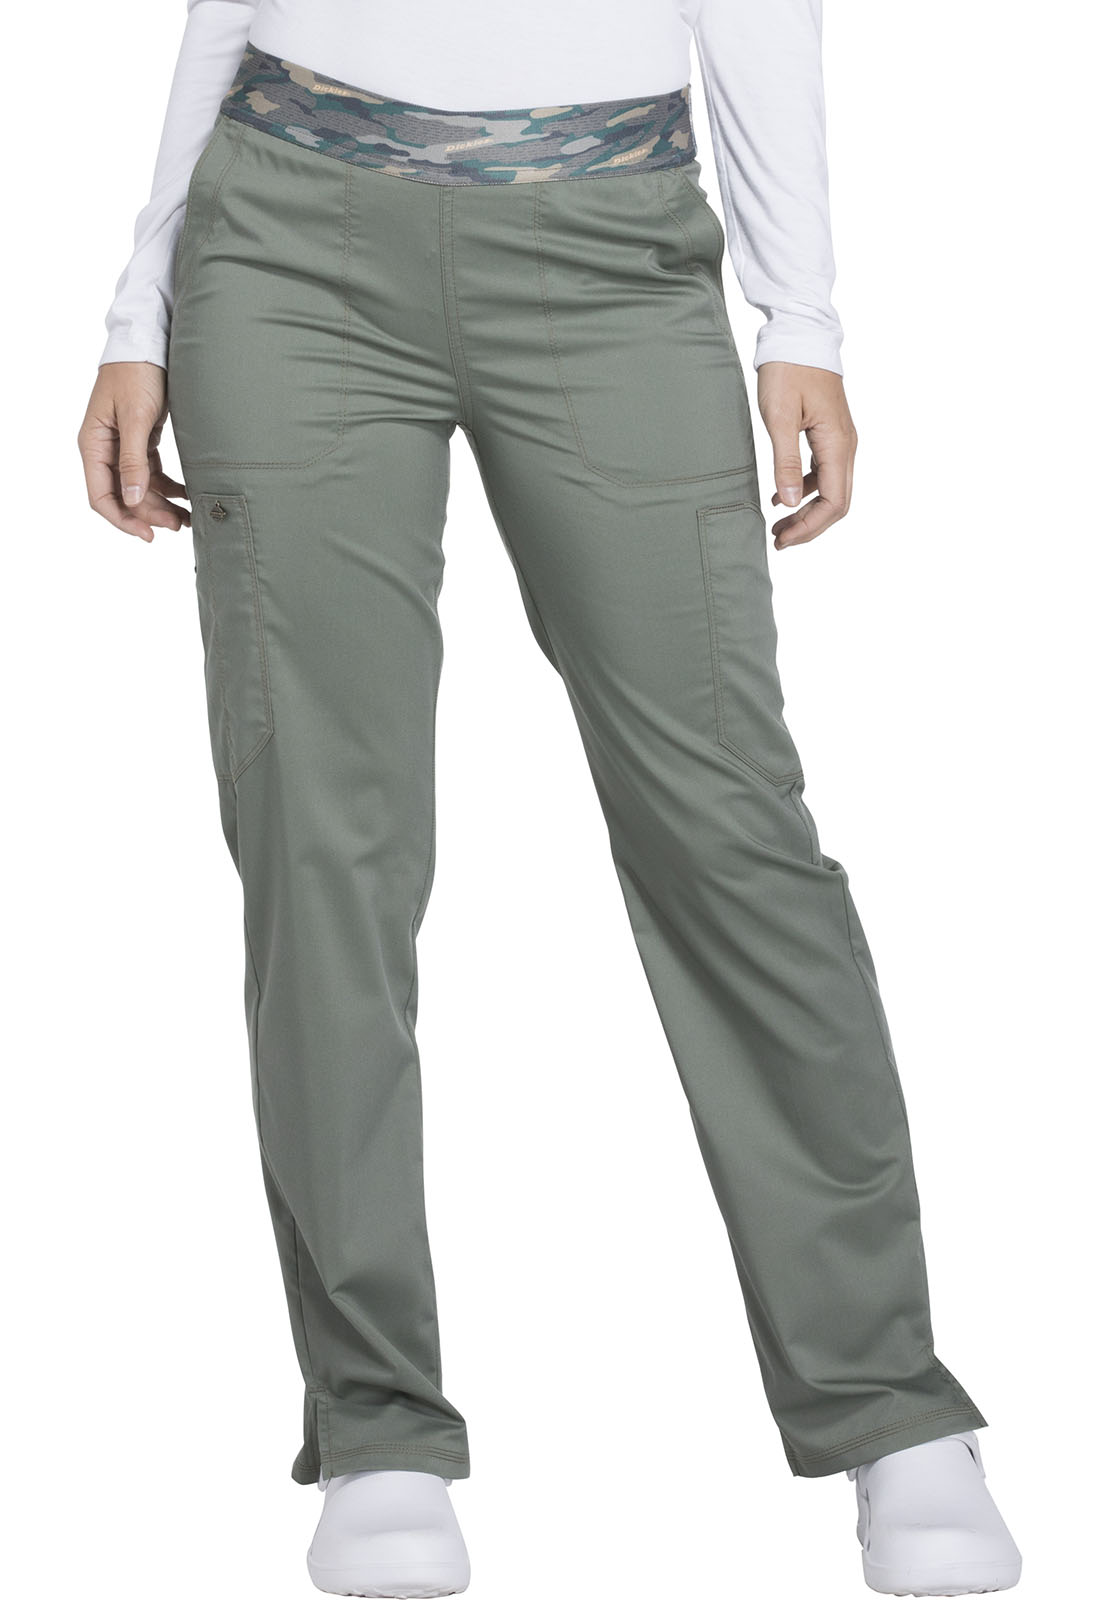 41dcadbef6 Dickies Essence Women's Mid Rise Tapered Leg Pull-on Pant Green